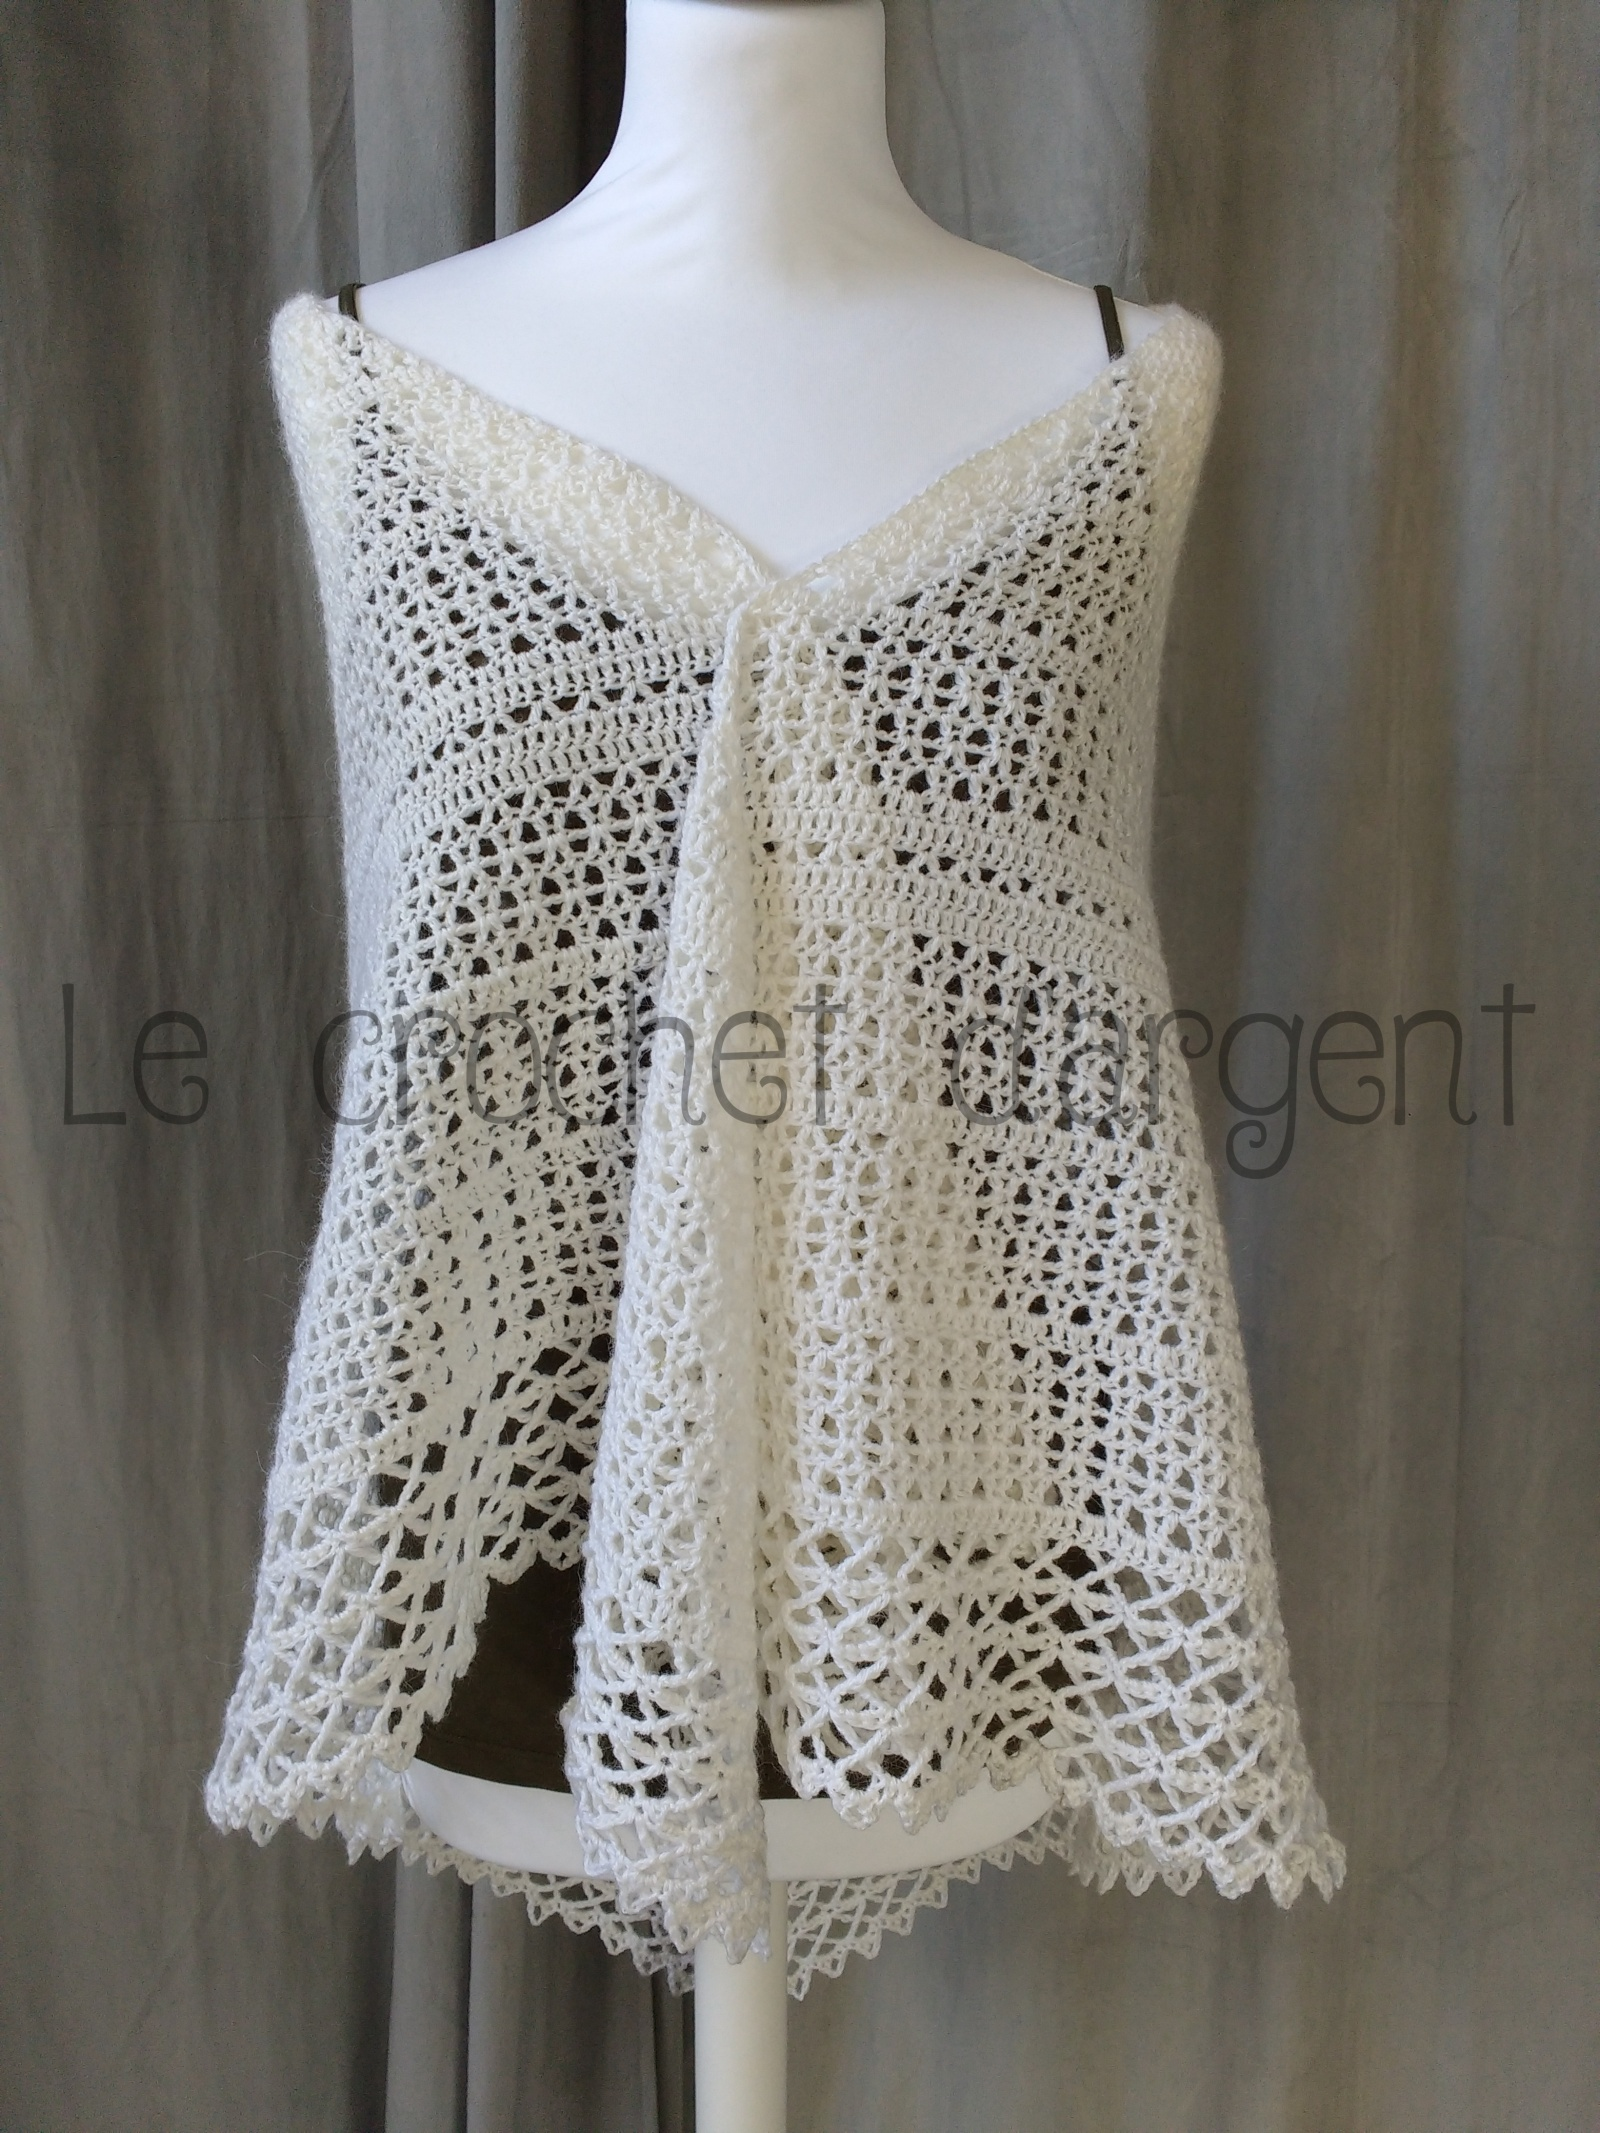 A beautiful white crochet shawl, with free pattern